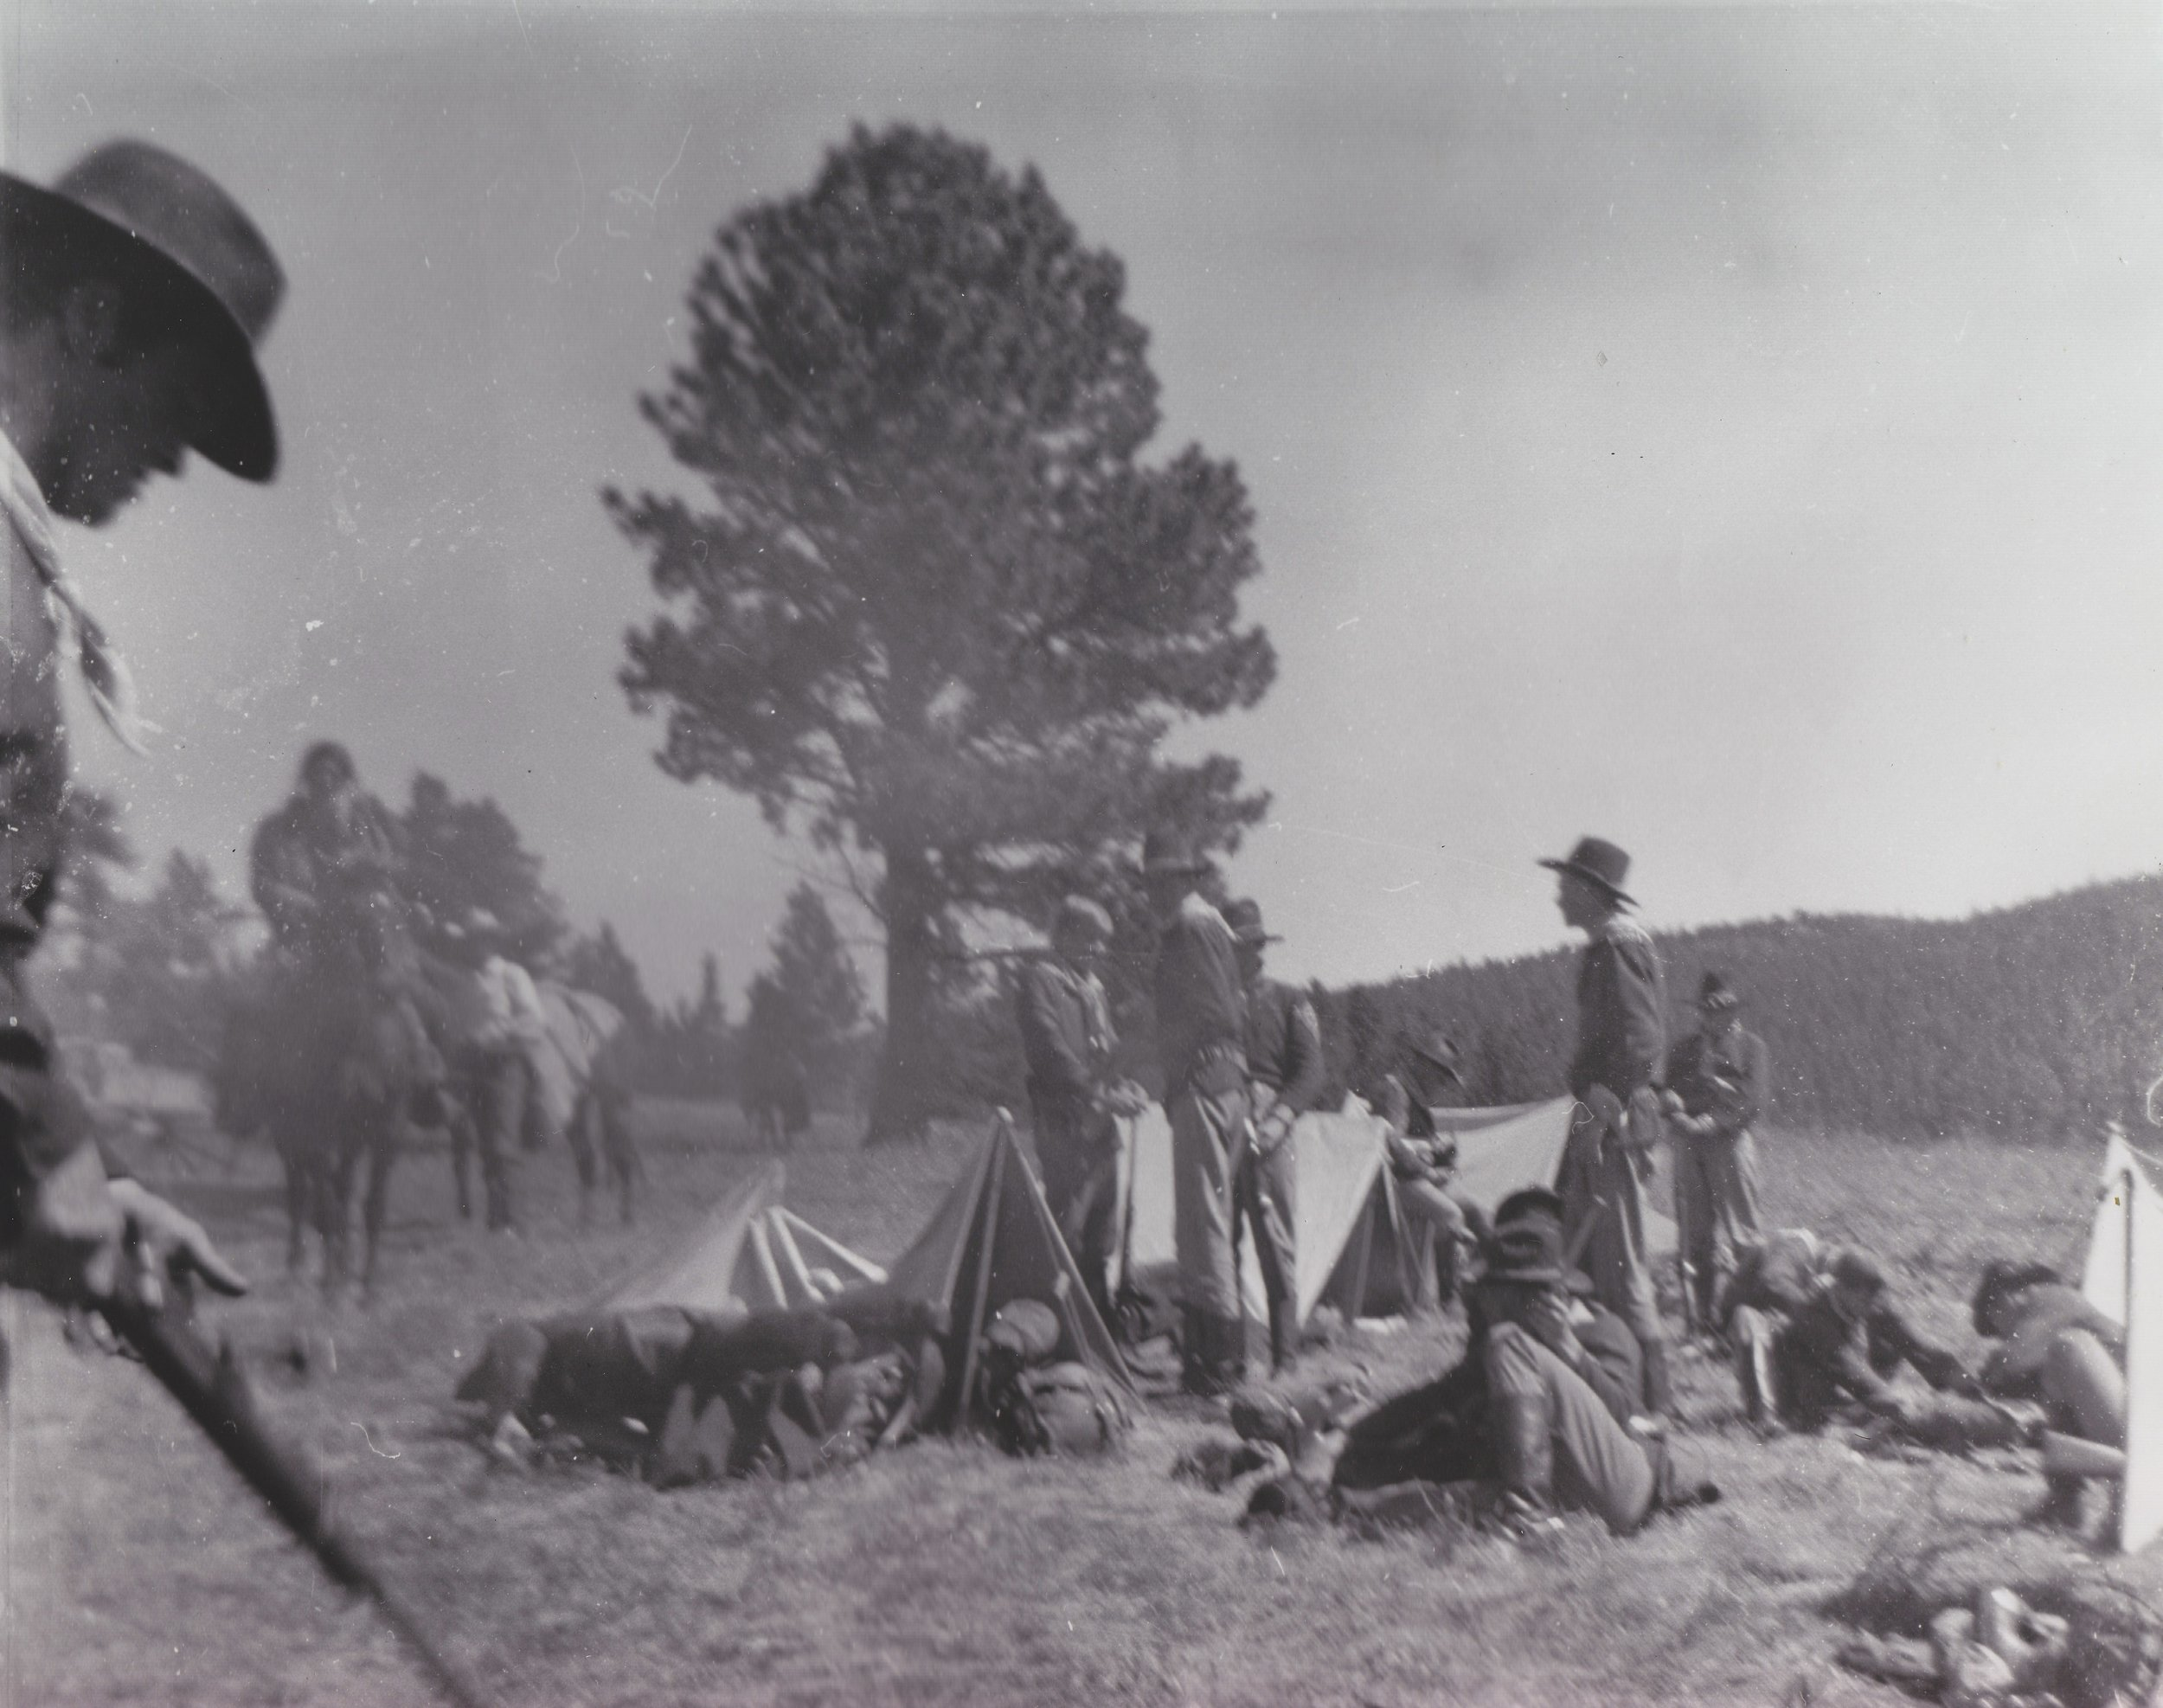 Production crew and Westernaires on the set of  Stagecoach  (1966) preparing for the opening scenes.